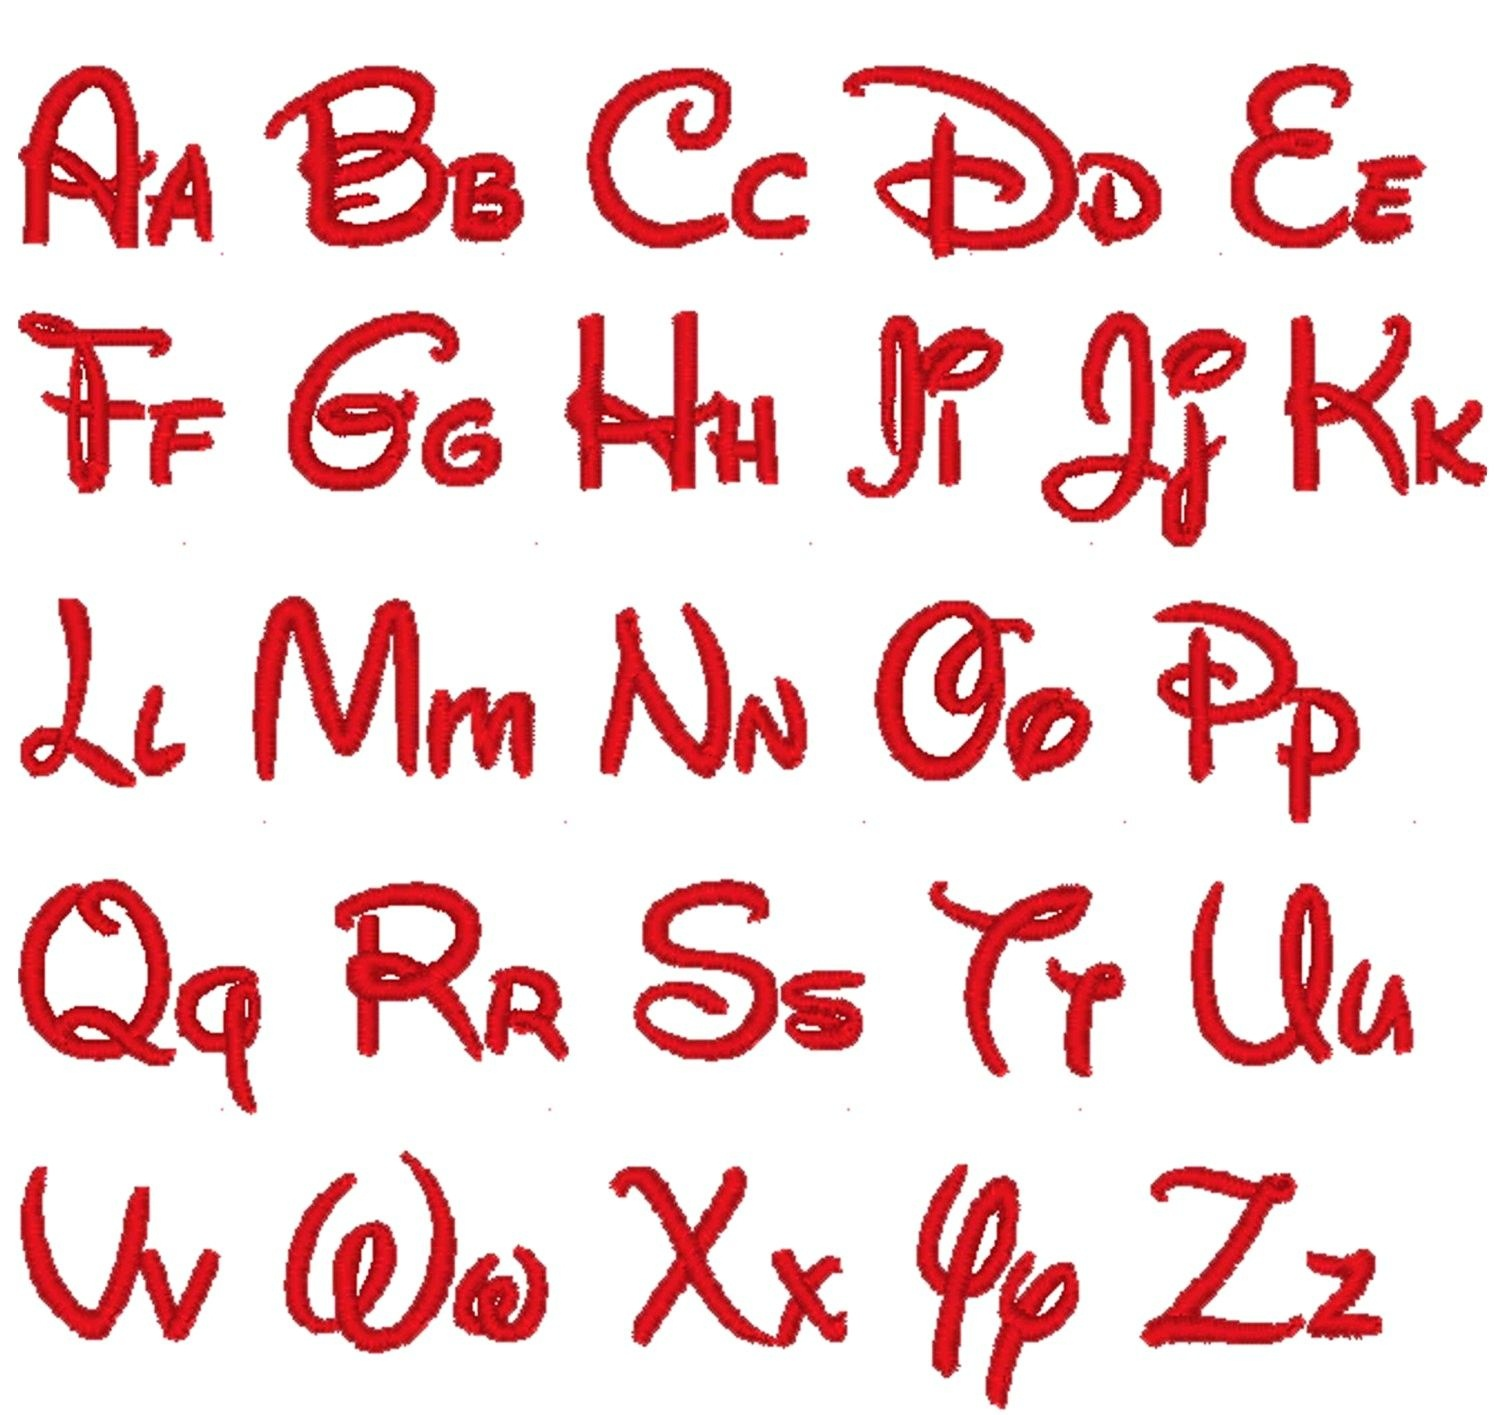 14 Lovely Disney Letter Stencils For All | Kittybabylove - Free Printable Disney Font Stencils